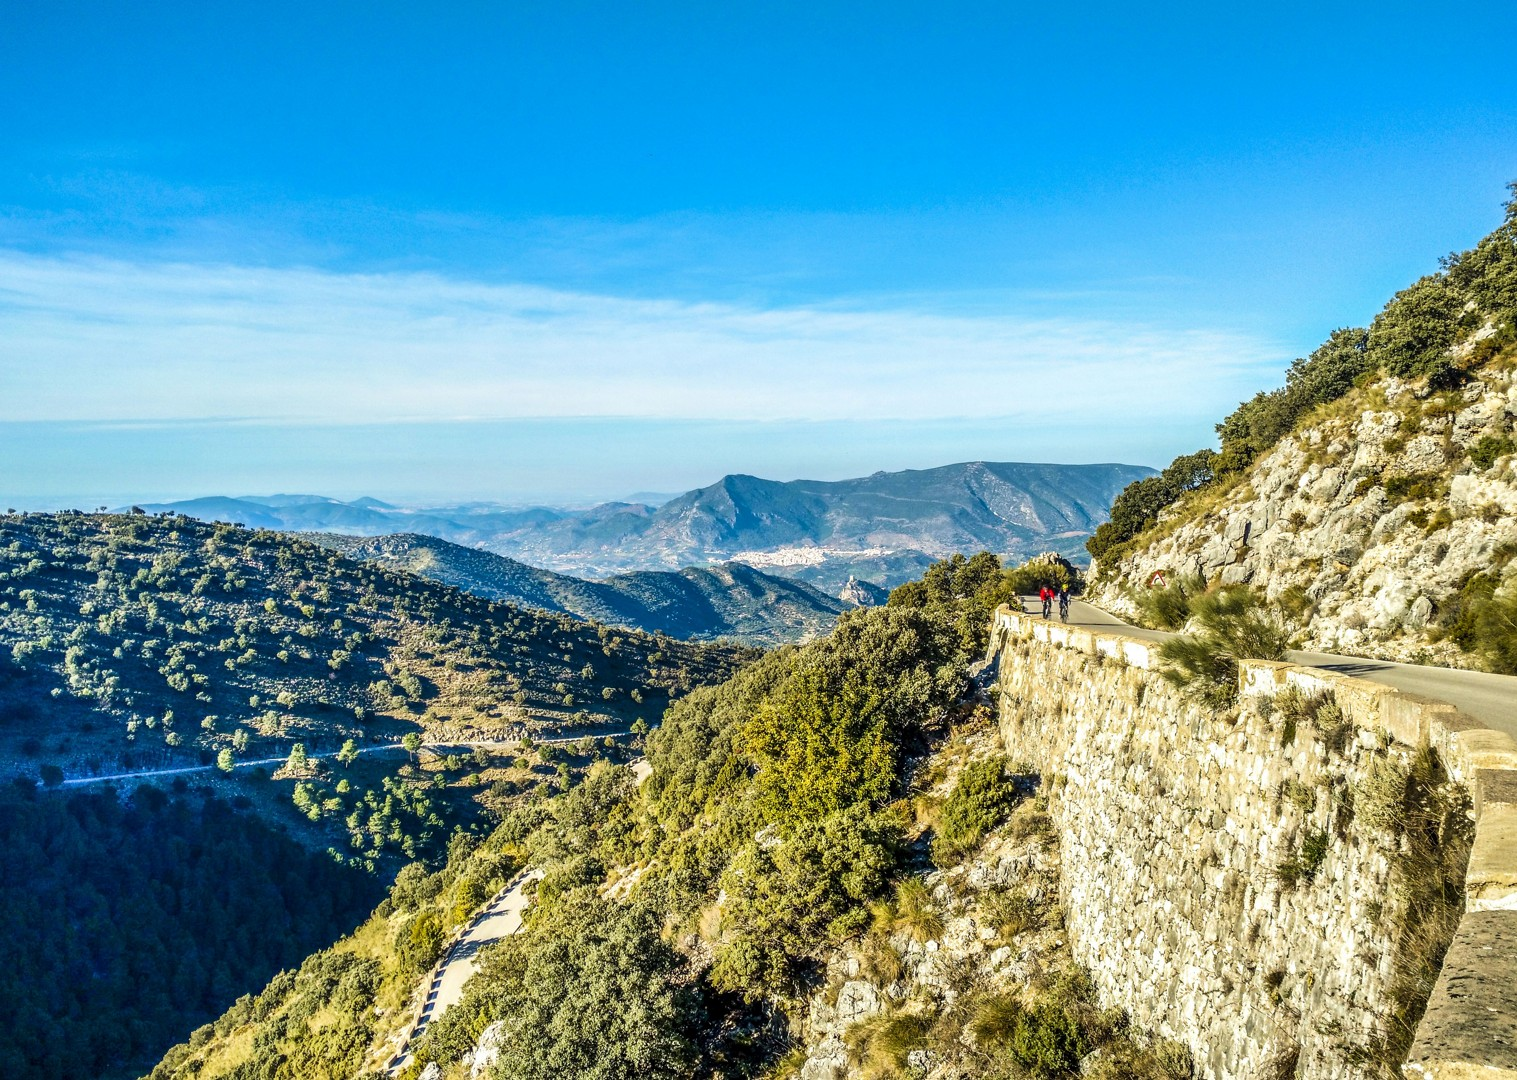 spanish-mountains-self-guided-road-cycling-tour-fun.jpg - Southern Spain - Andalucia - Los Pueblos Blancos - Self-Guided Road Cycling Holiday - Road Cycling